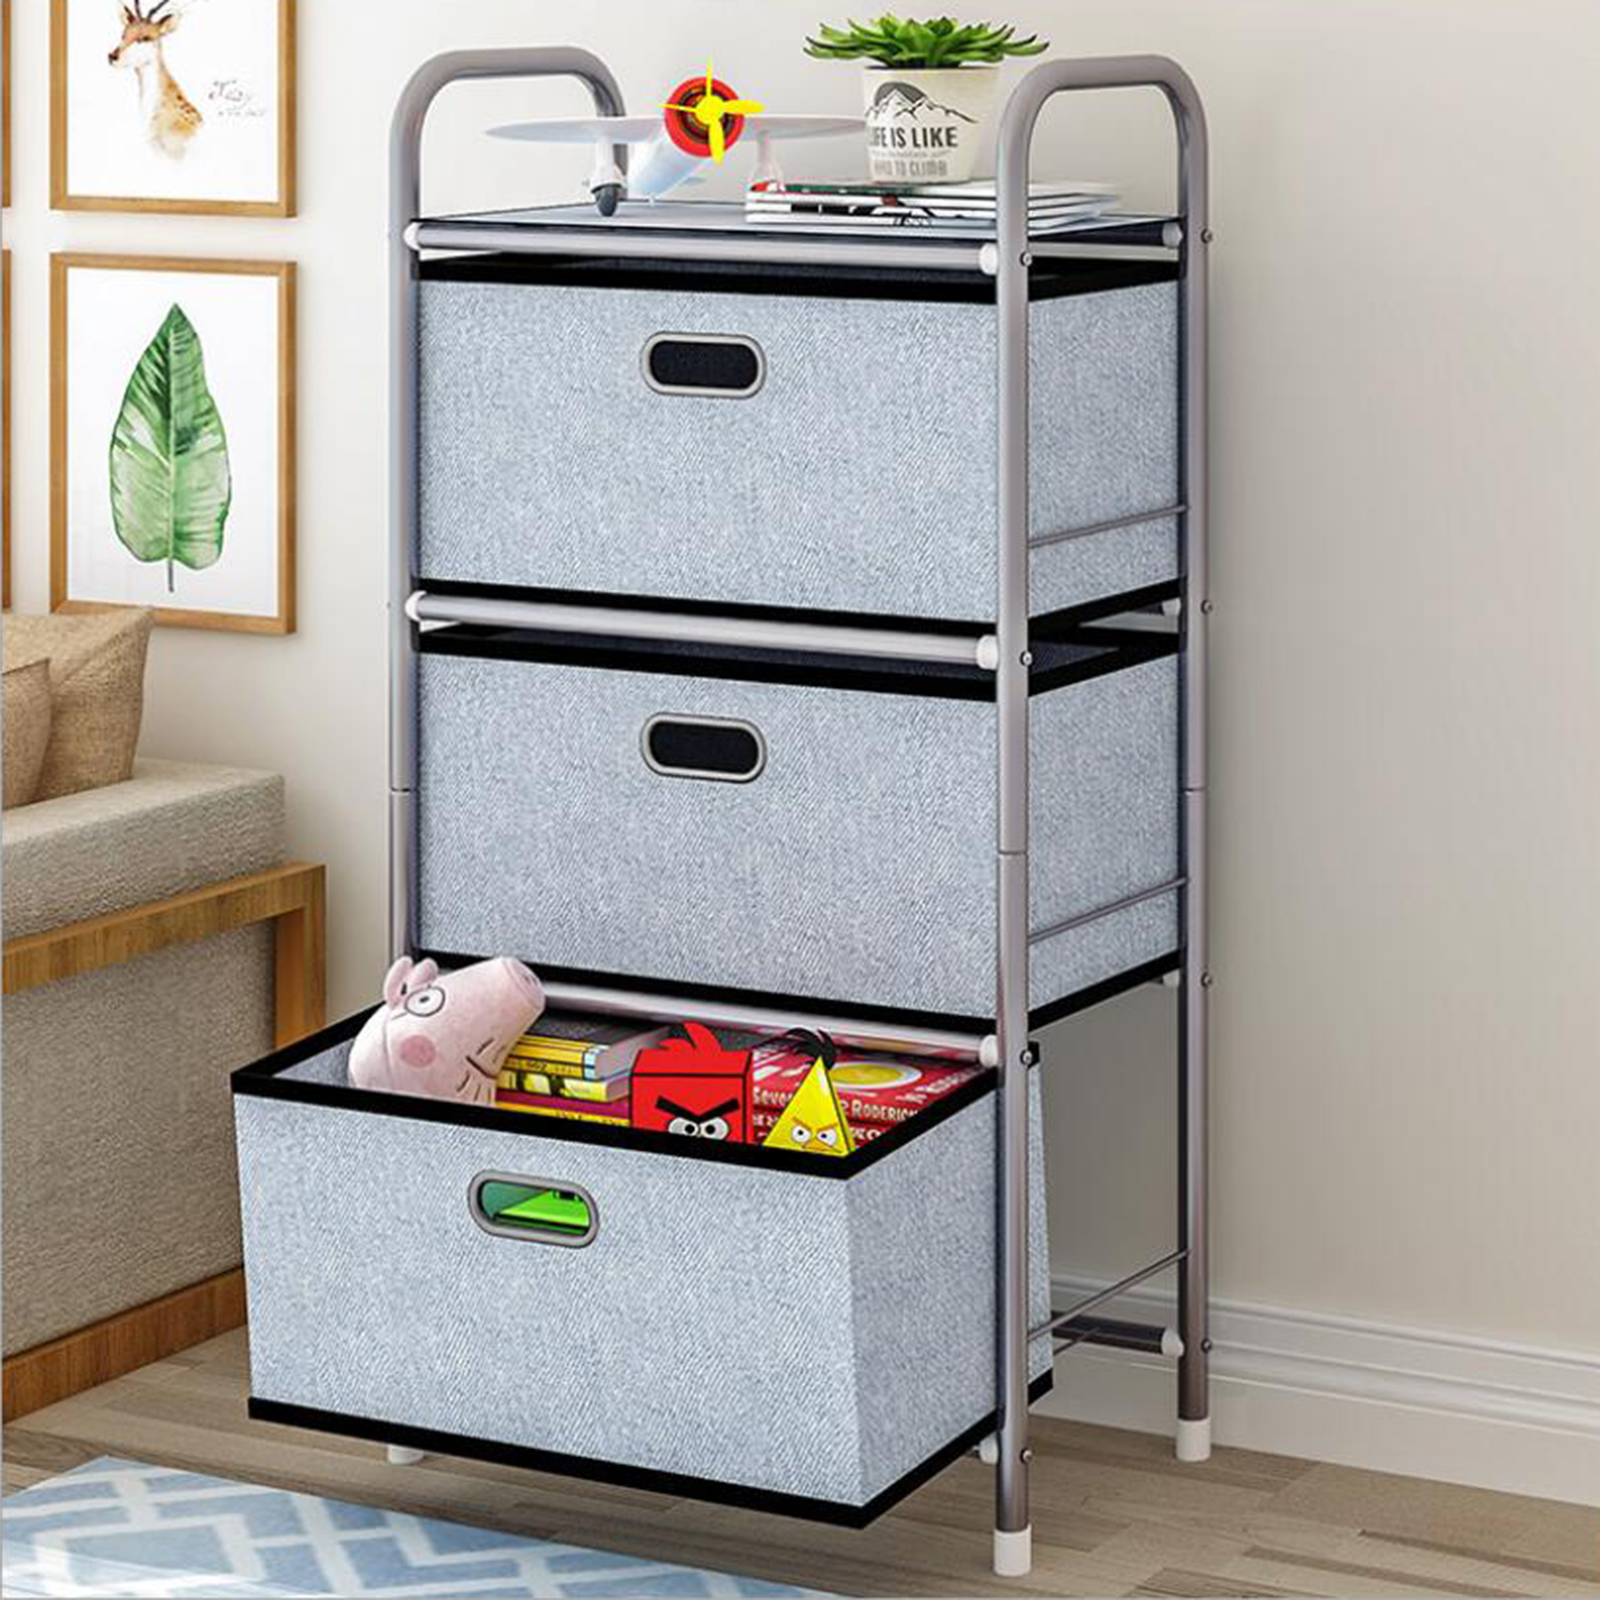 Multifunction Chest of Drawers Dresser 3 Drawer Non woven Furniture Cabinet Bedroom Storage Toy storage box